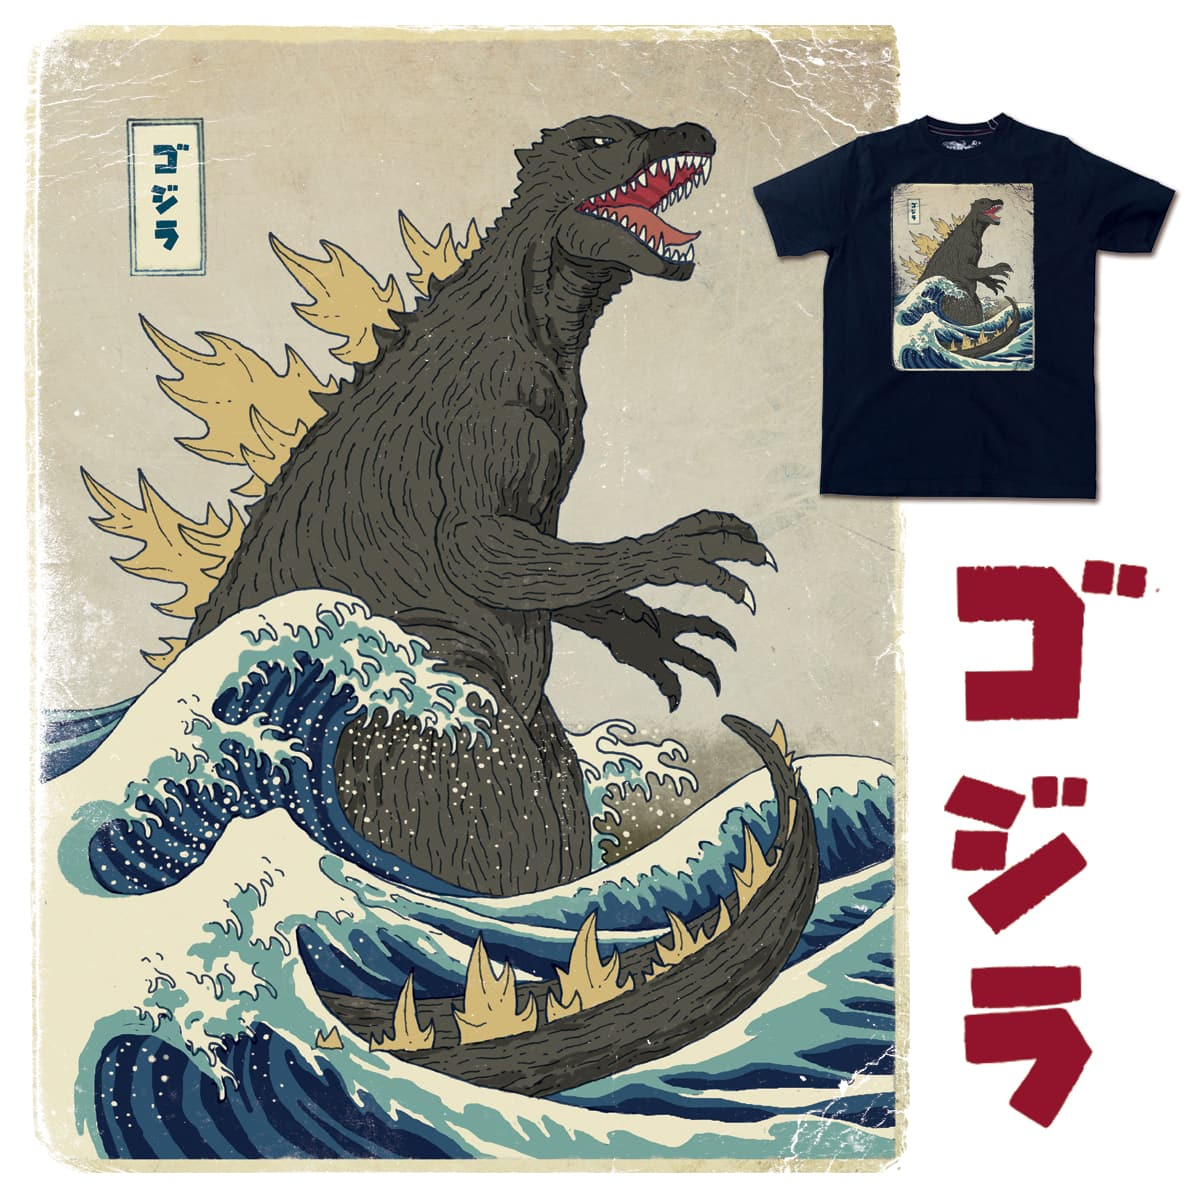 The Great Godzilla off Kanagawa by DinoMike on Threadless